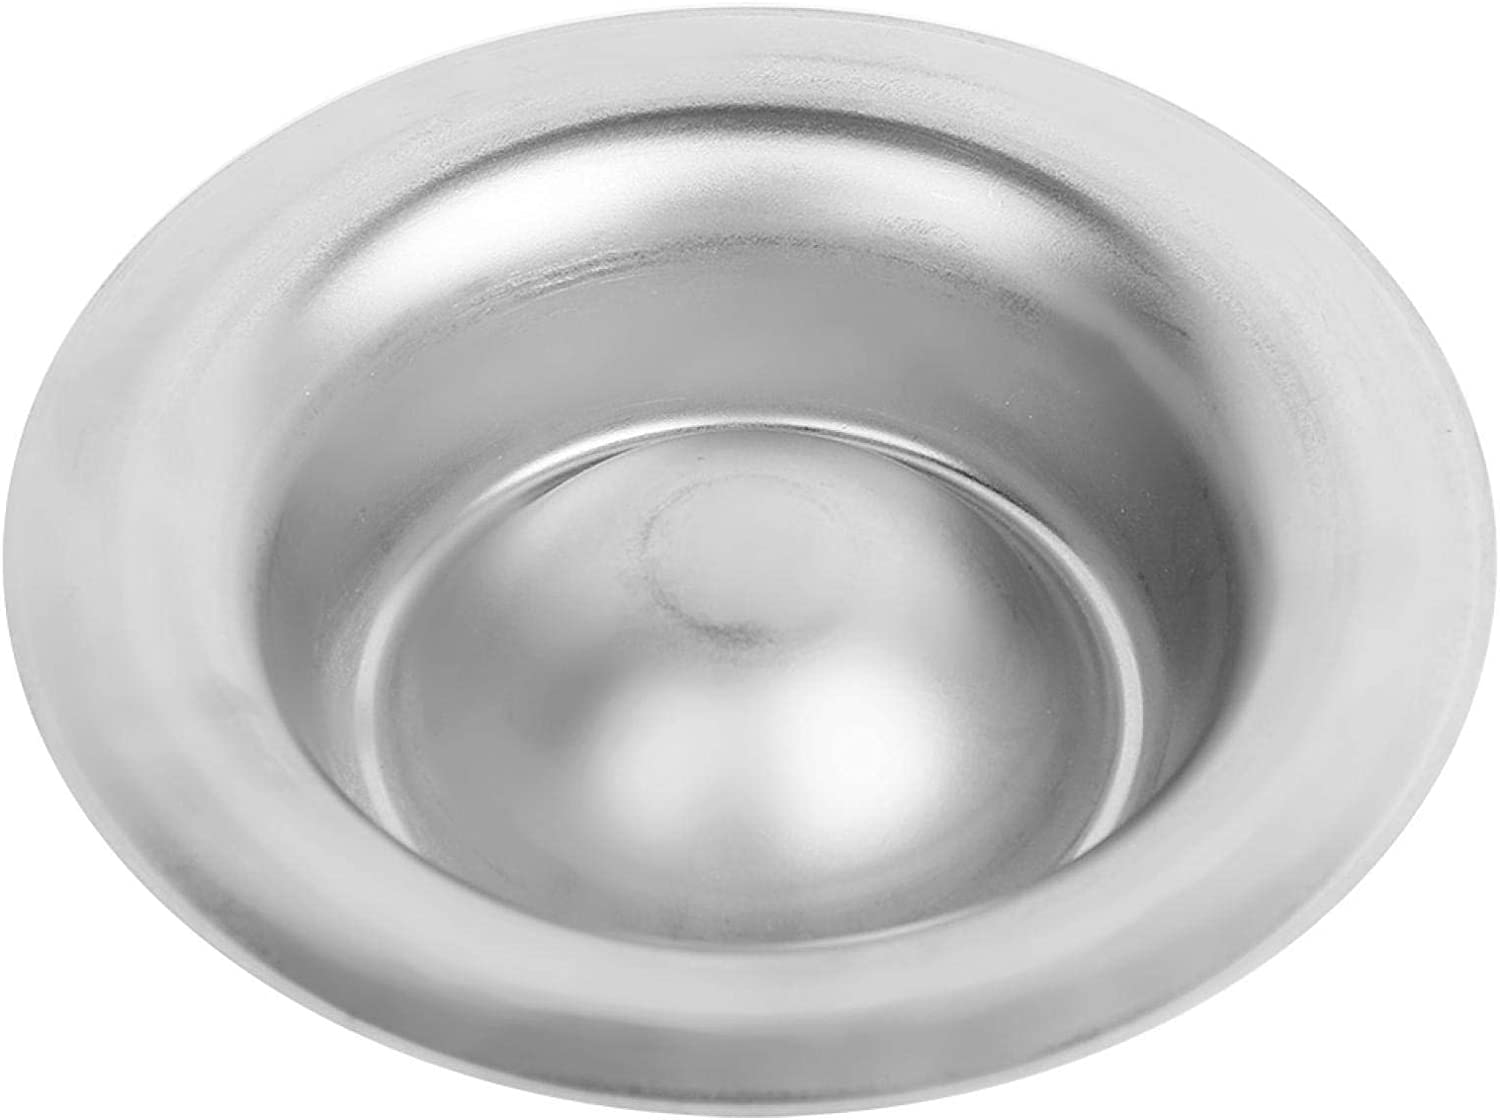 Single Egg Holder Tray Cup SALENEW very popular! Cups NEW